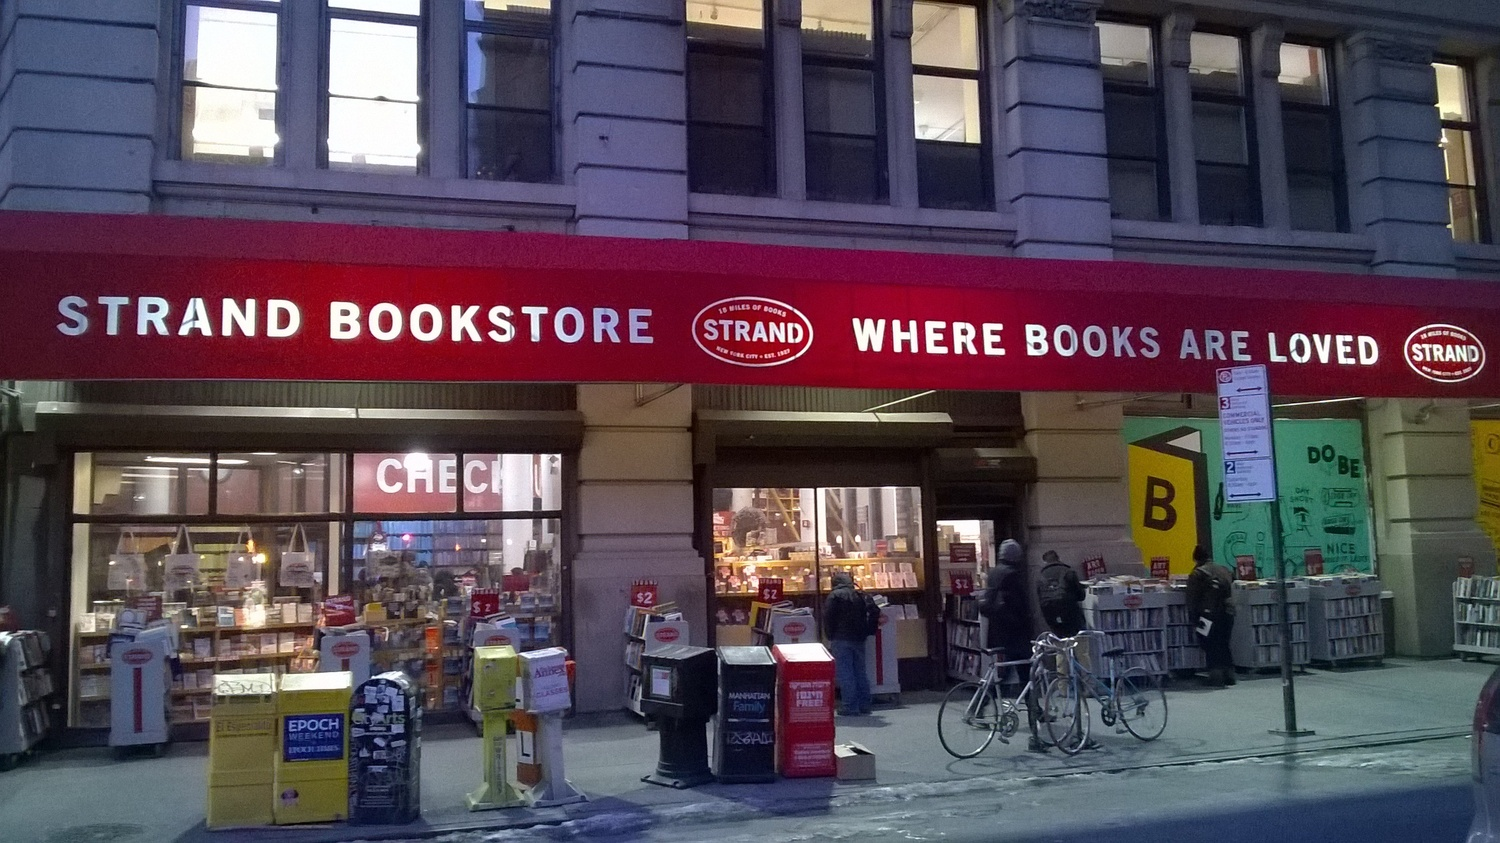 The Strand Bookstore